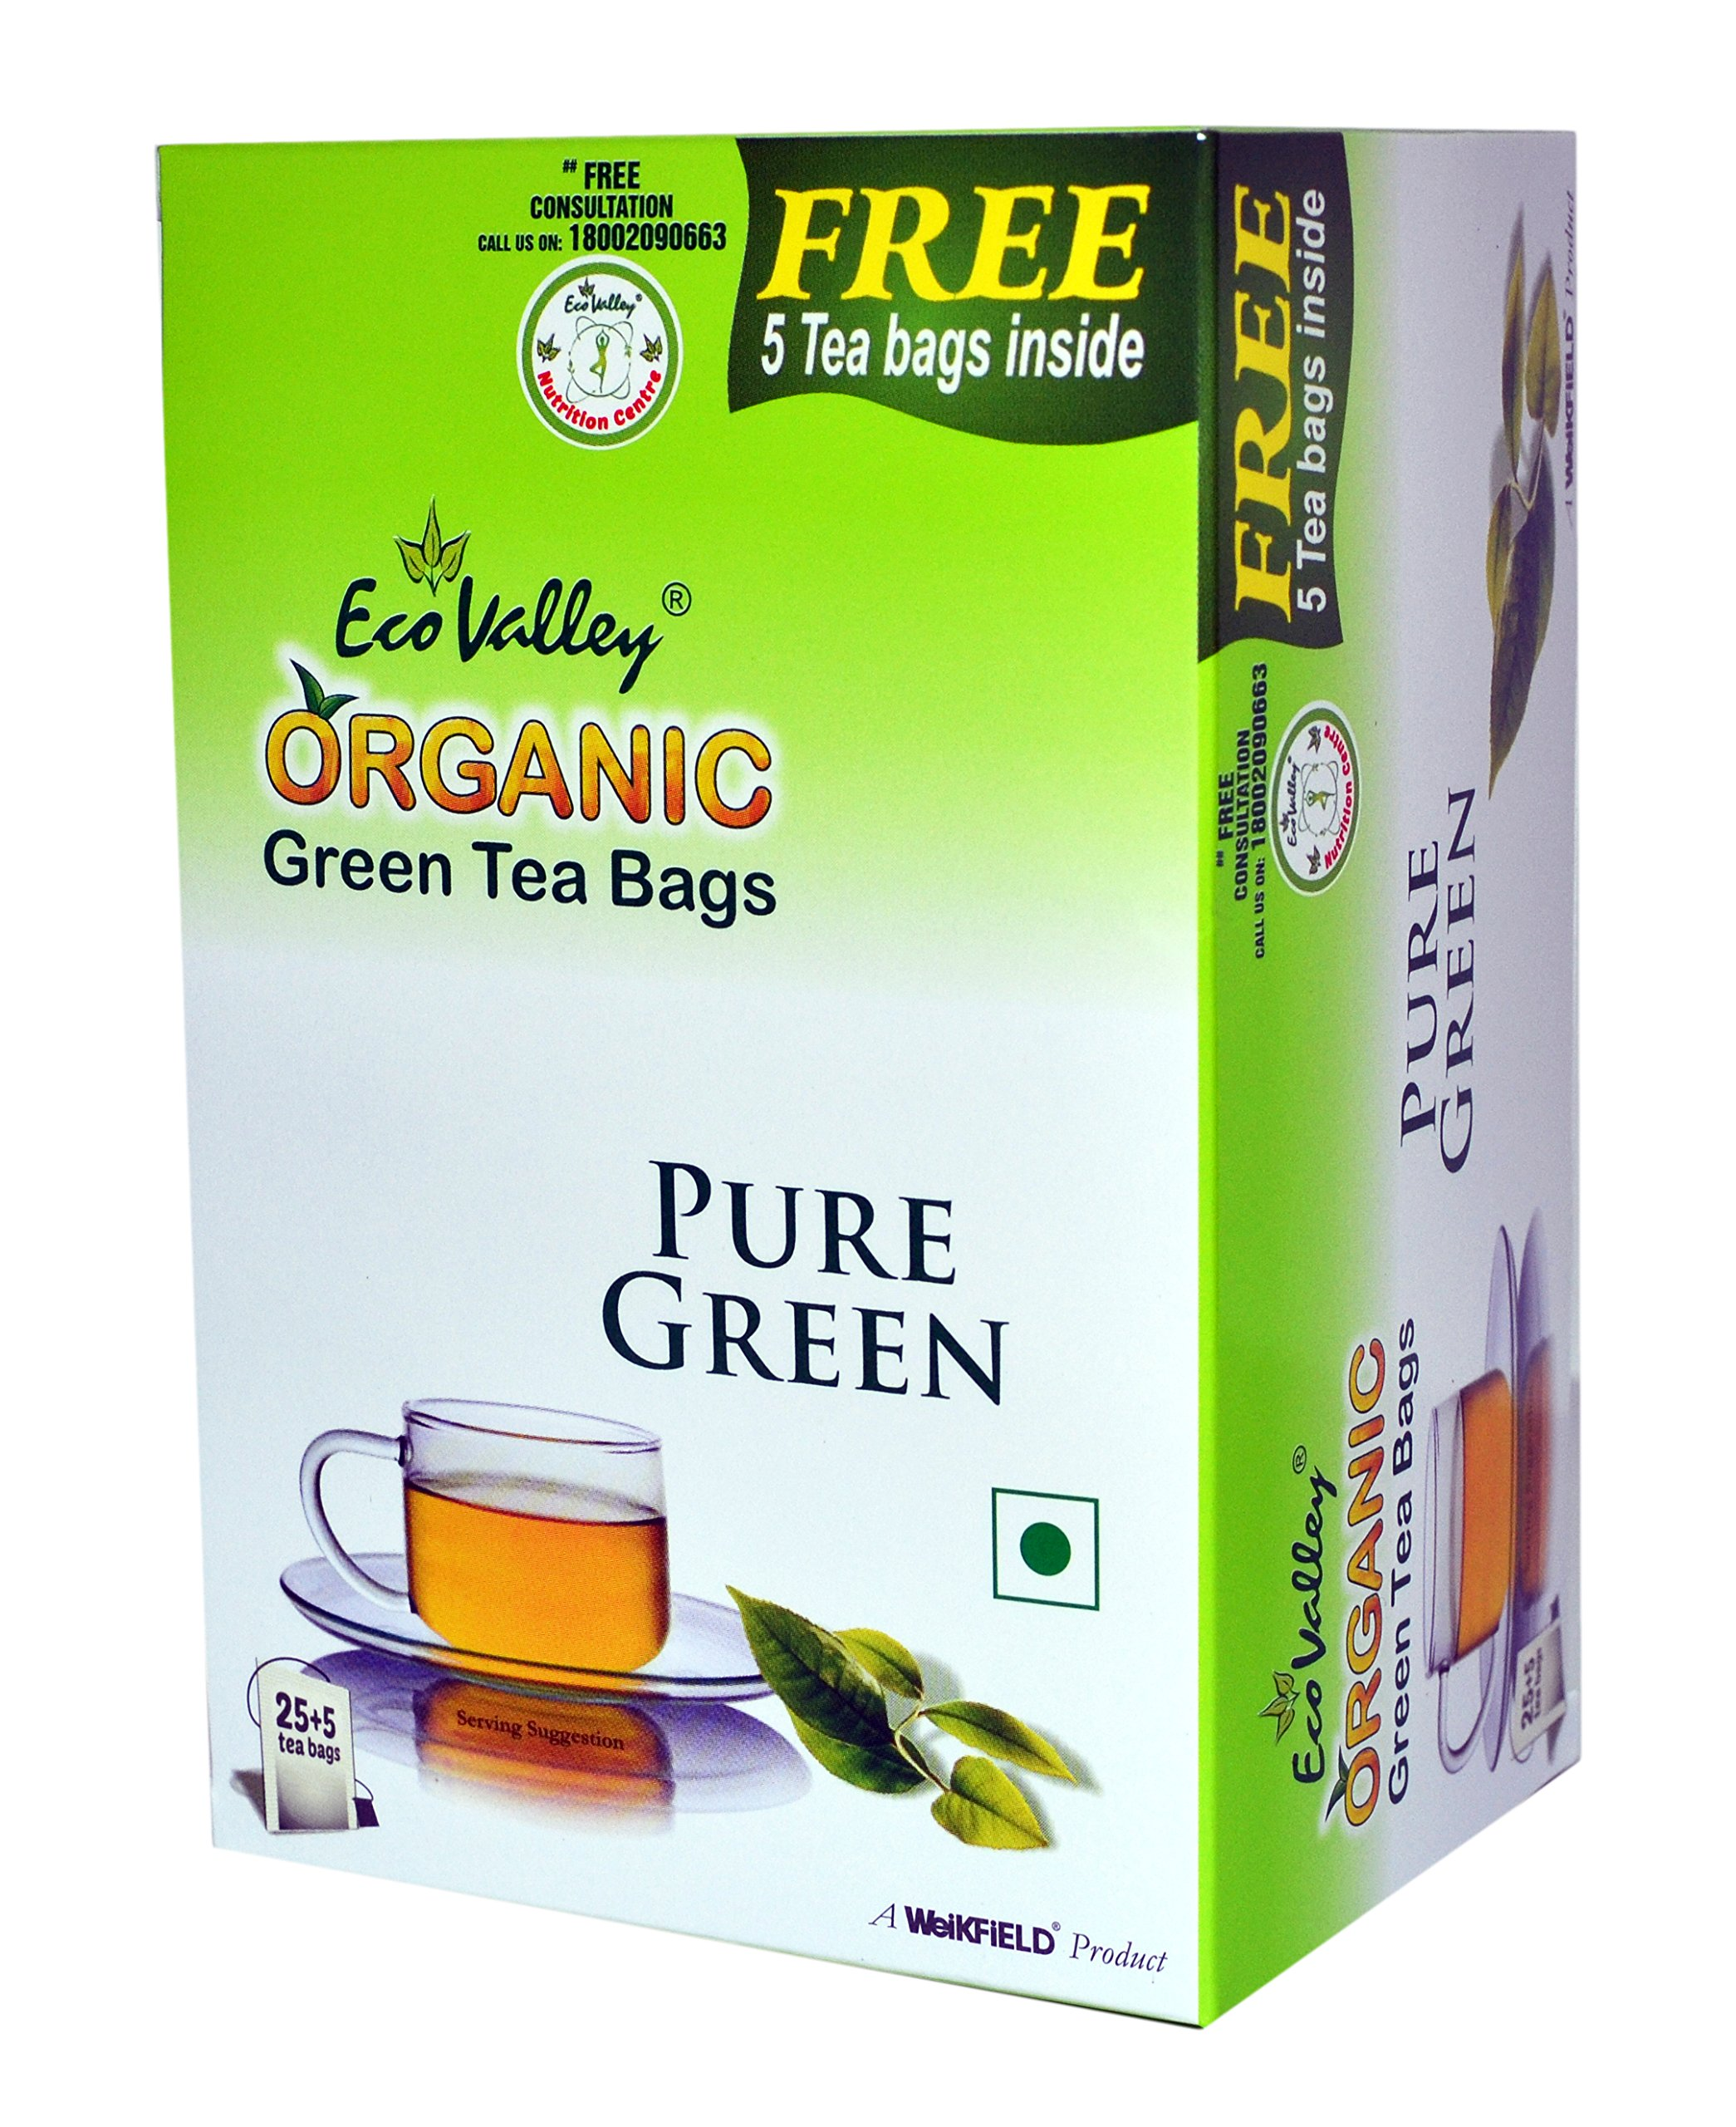 Eco Valley Organic Green Tea, Pure, 25 Tea Bags (Free 5 Tea Bags Inside)